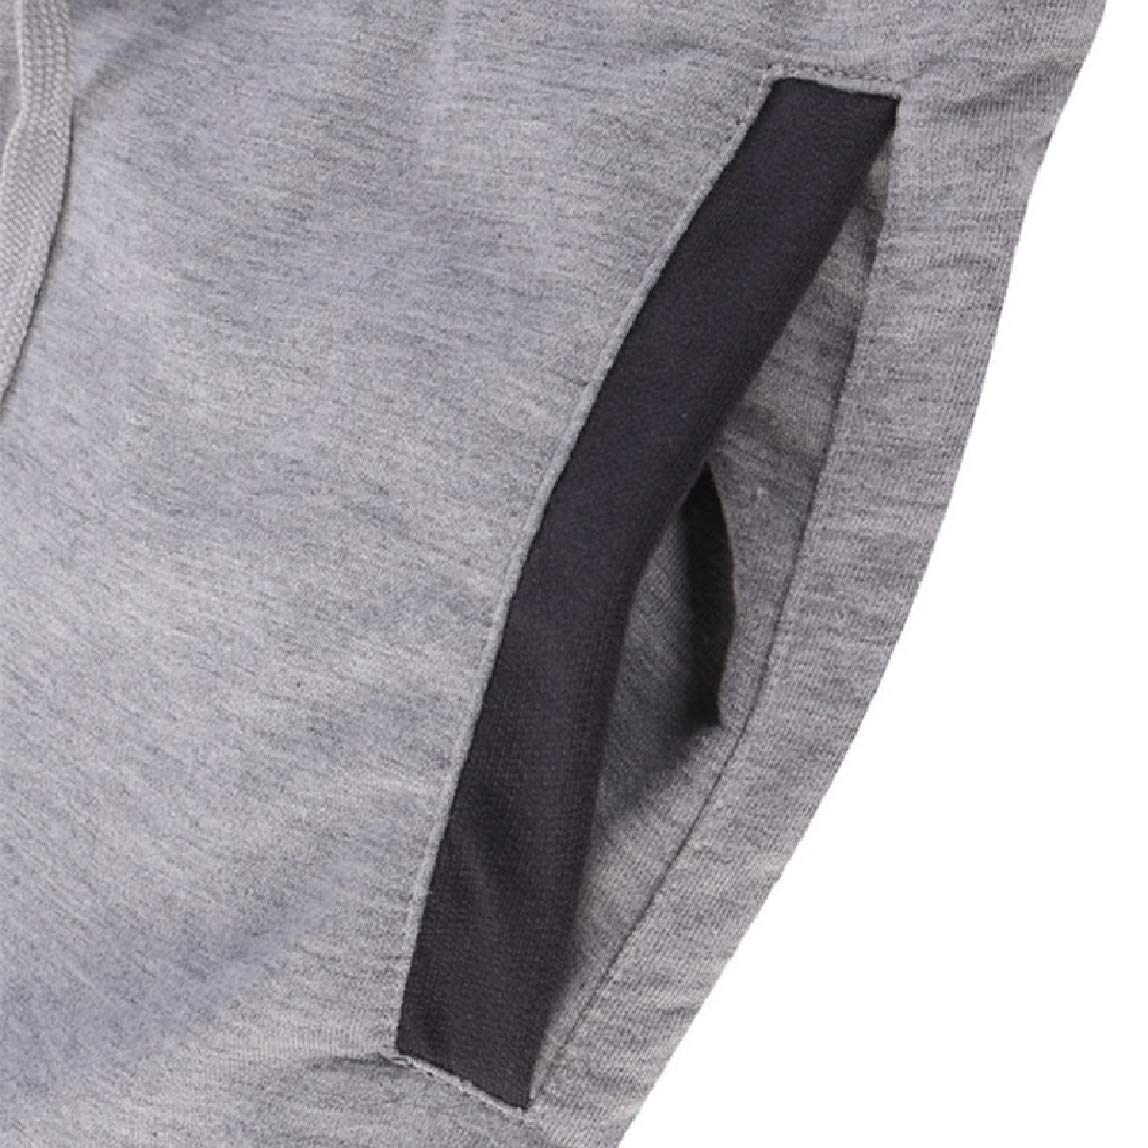 Mirrliy Mens Outdoor Relaxed-Fit Runnung Cotton Activewear Jogging Harem Pants